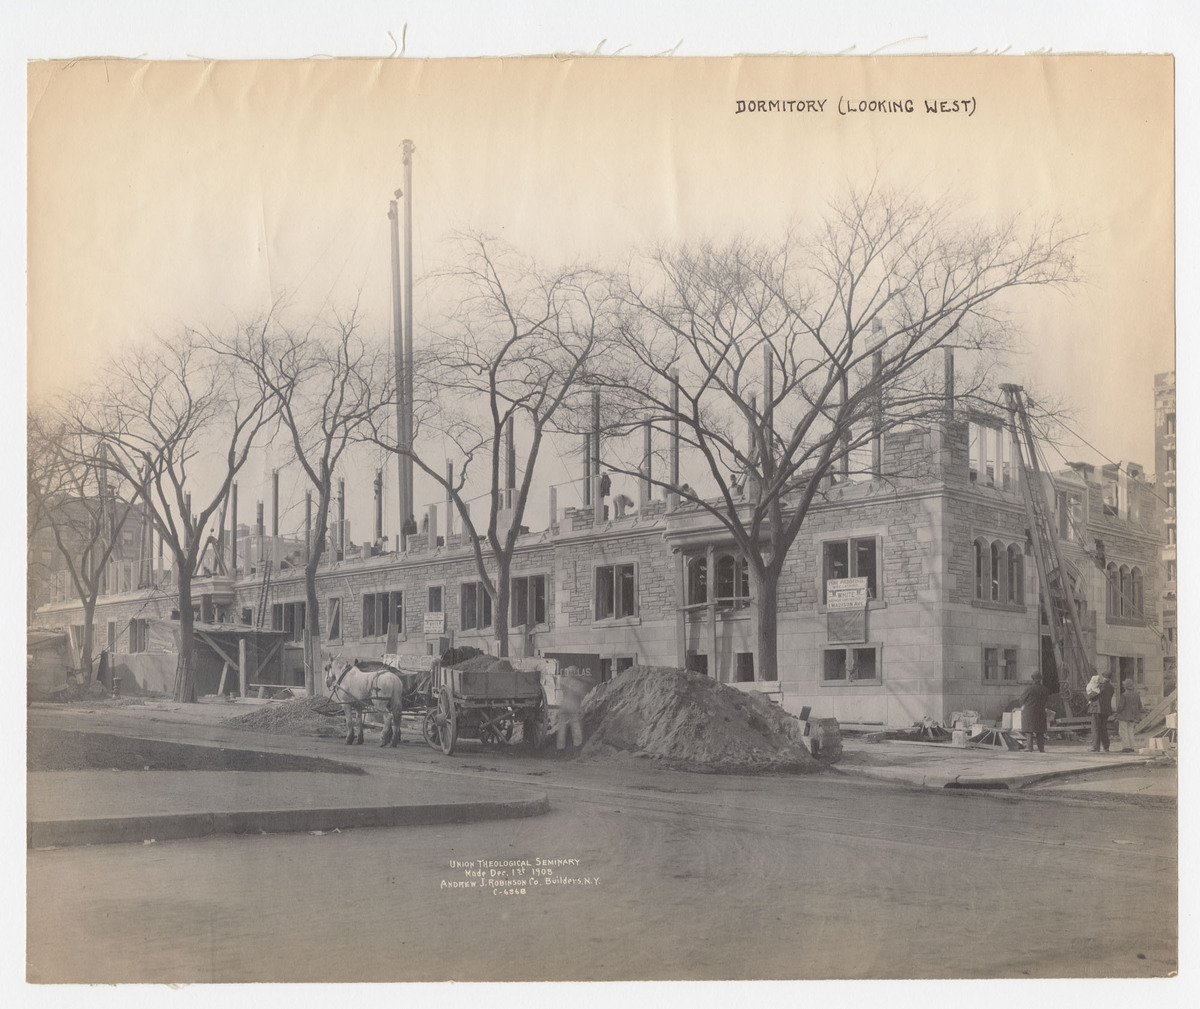 Union Theological Seminary C.6868. Dormitory (looking west)